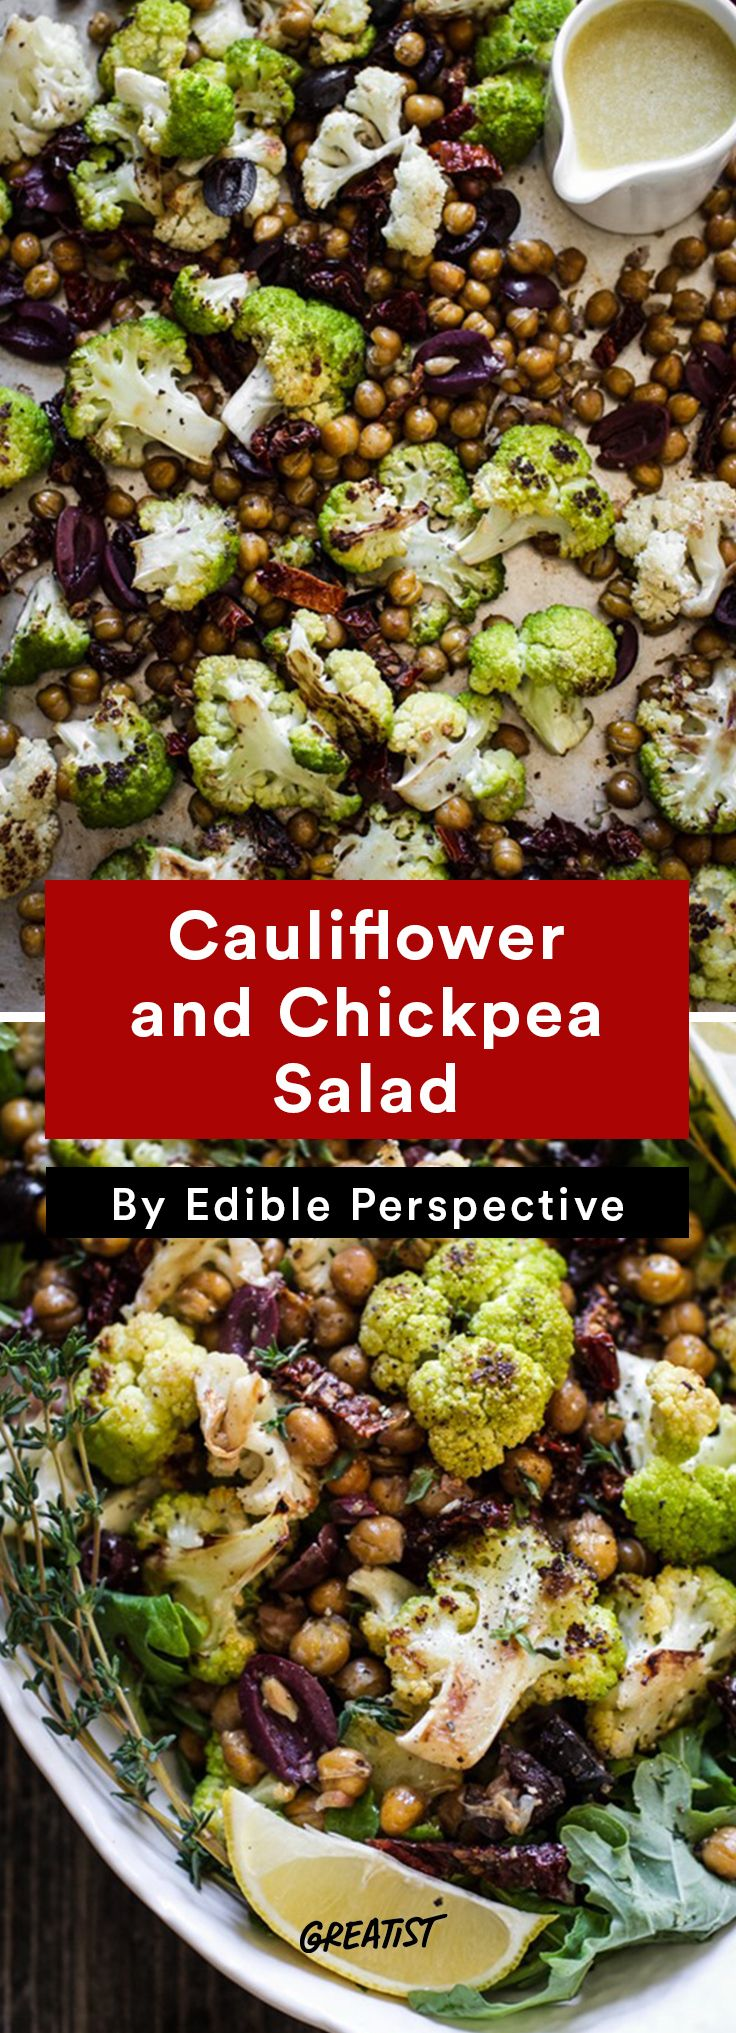 6. Cauliflower and Chickpea Salad #warm #salad #recipes http://greatist.com/eat/warm-salad-recipes-for-when-its-cold-out